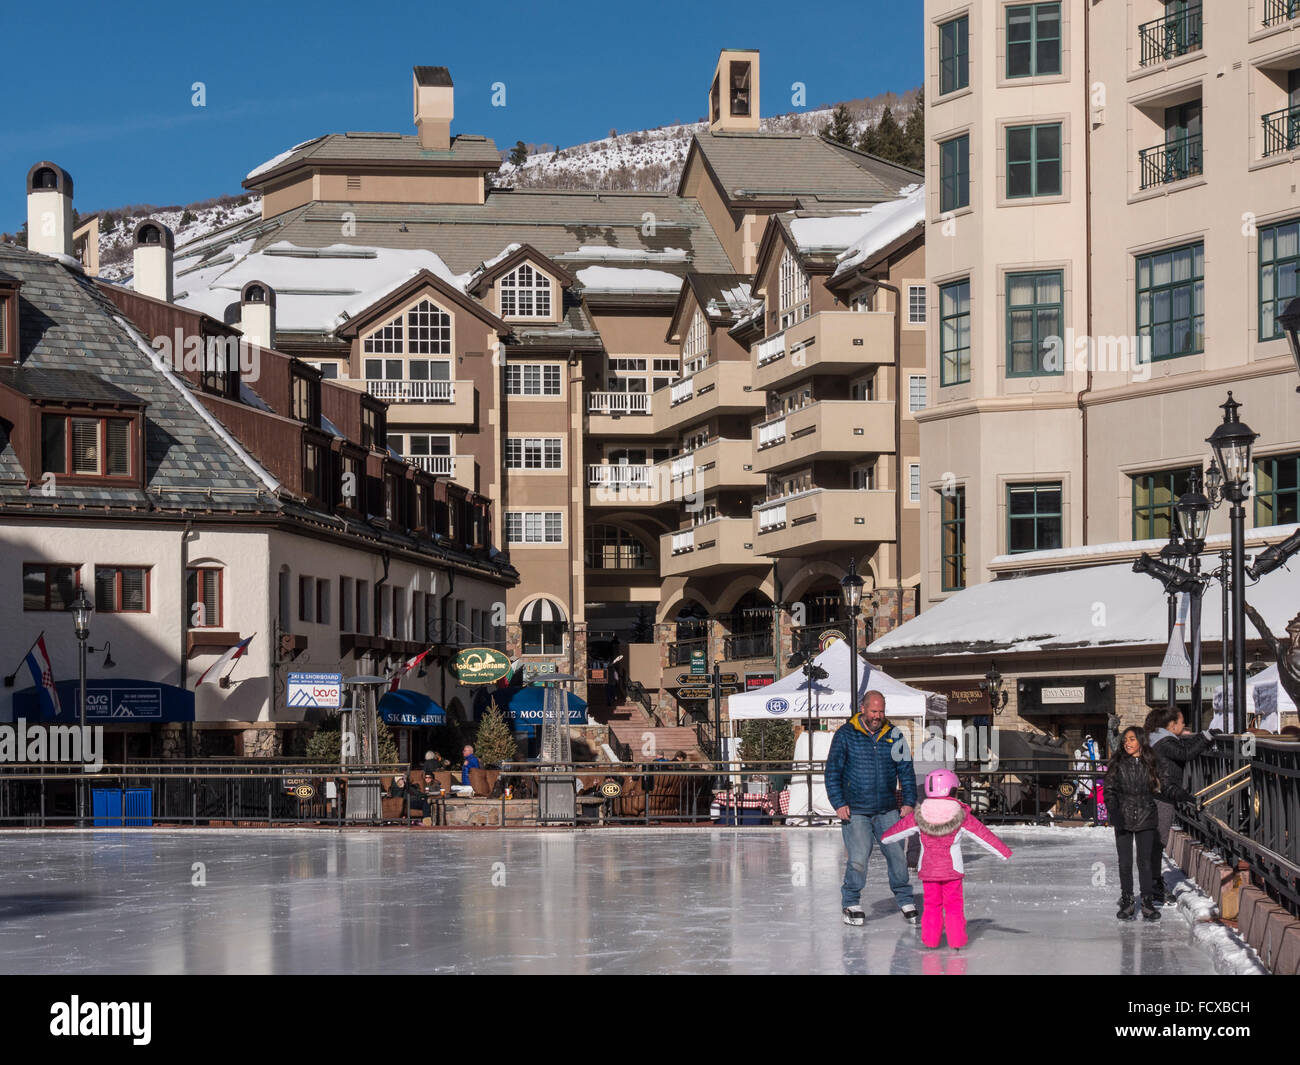 Ice rink, Beaver Creek Village, Beaver Creek Ski Resort, Avon, Colorado. - Stock Image